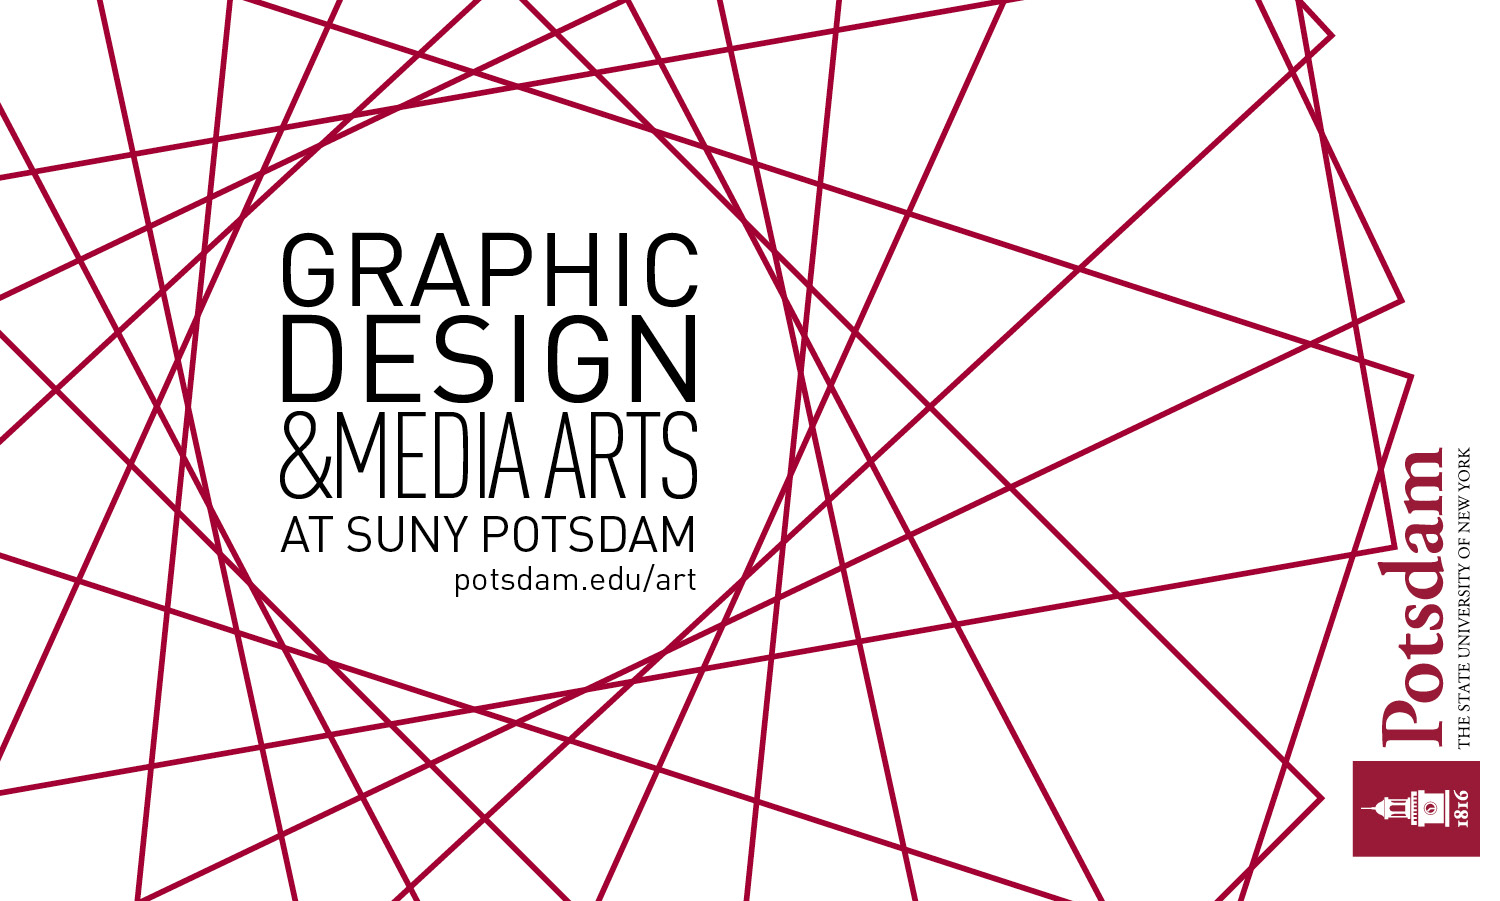 SUNY Potsdam Launches New Program in Graphic Design and Media Arts